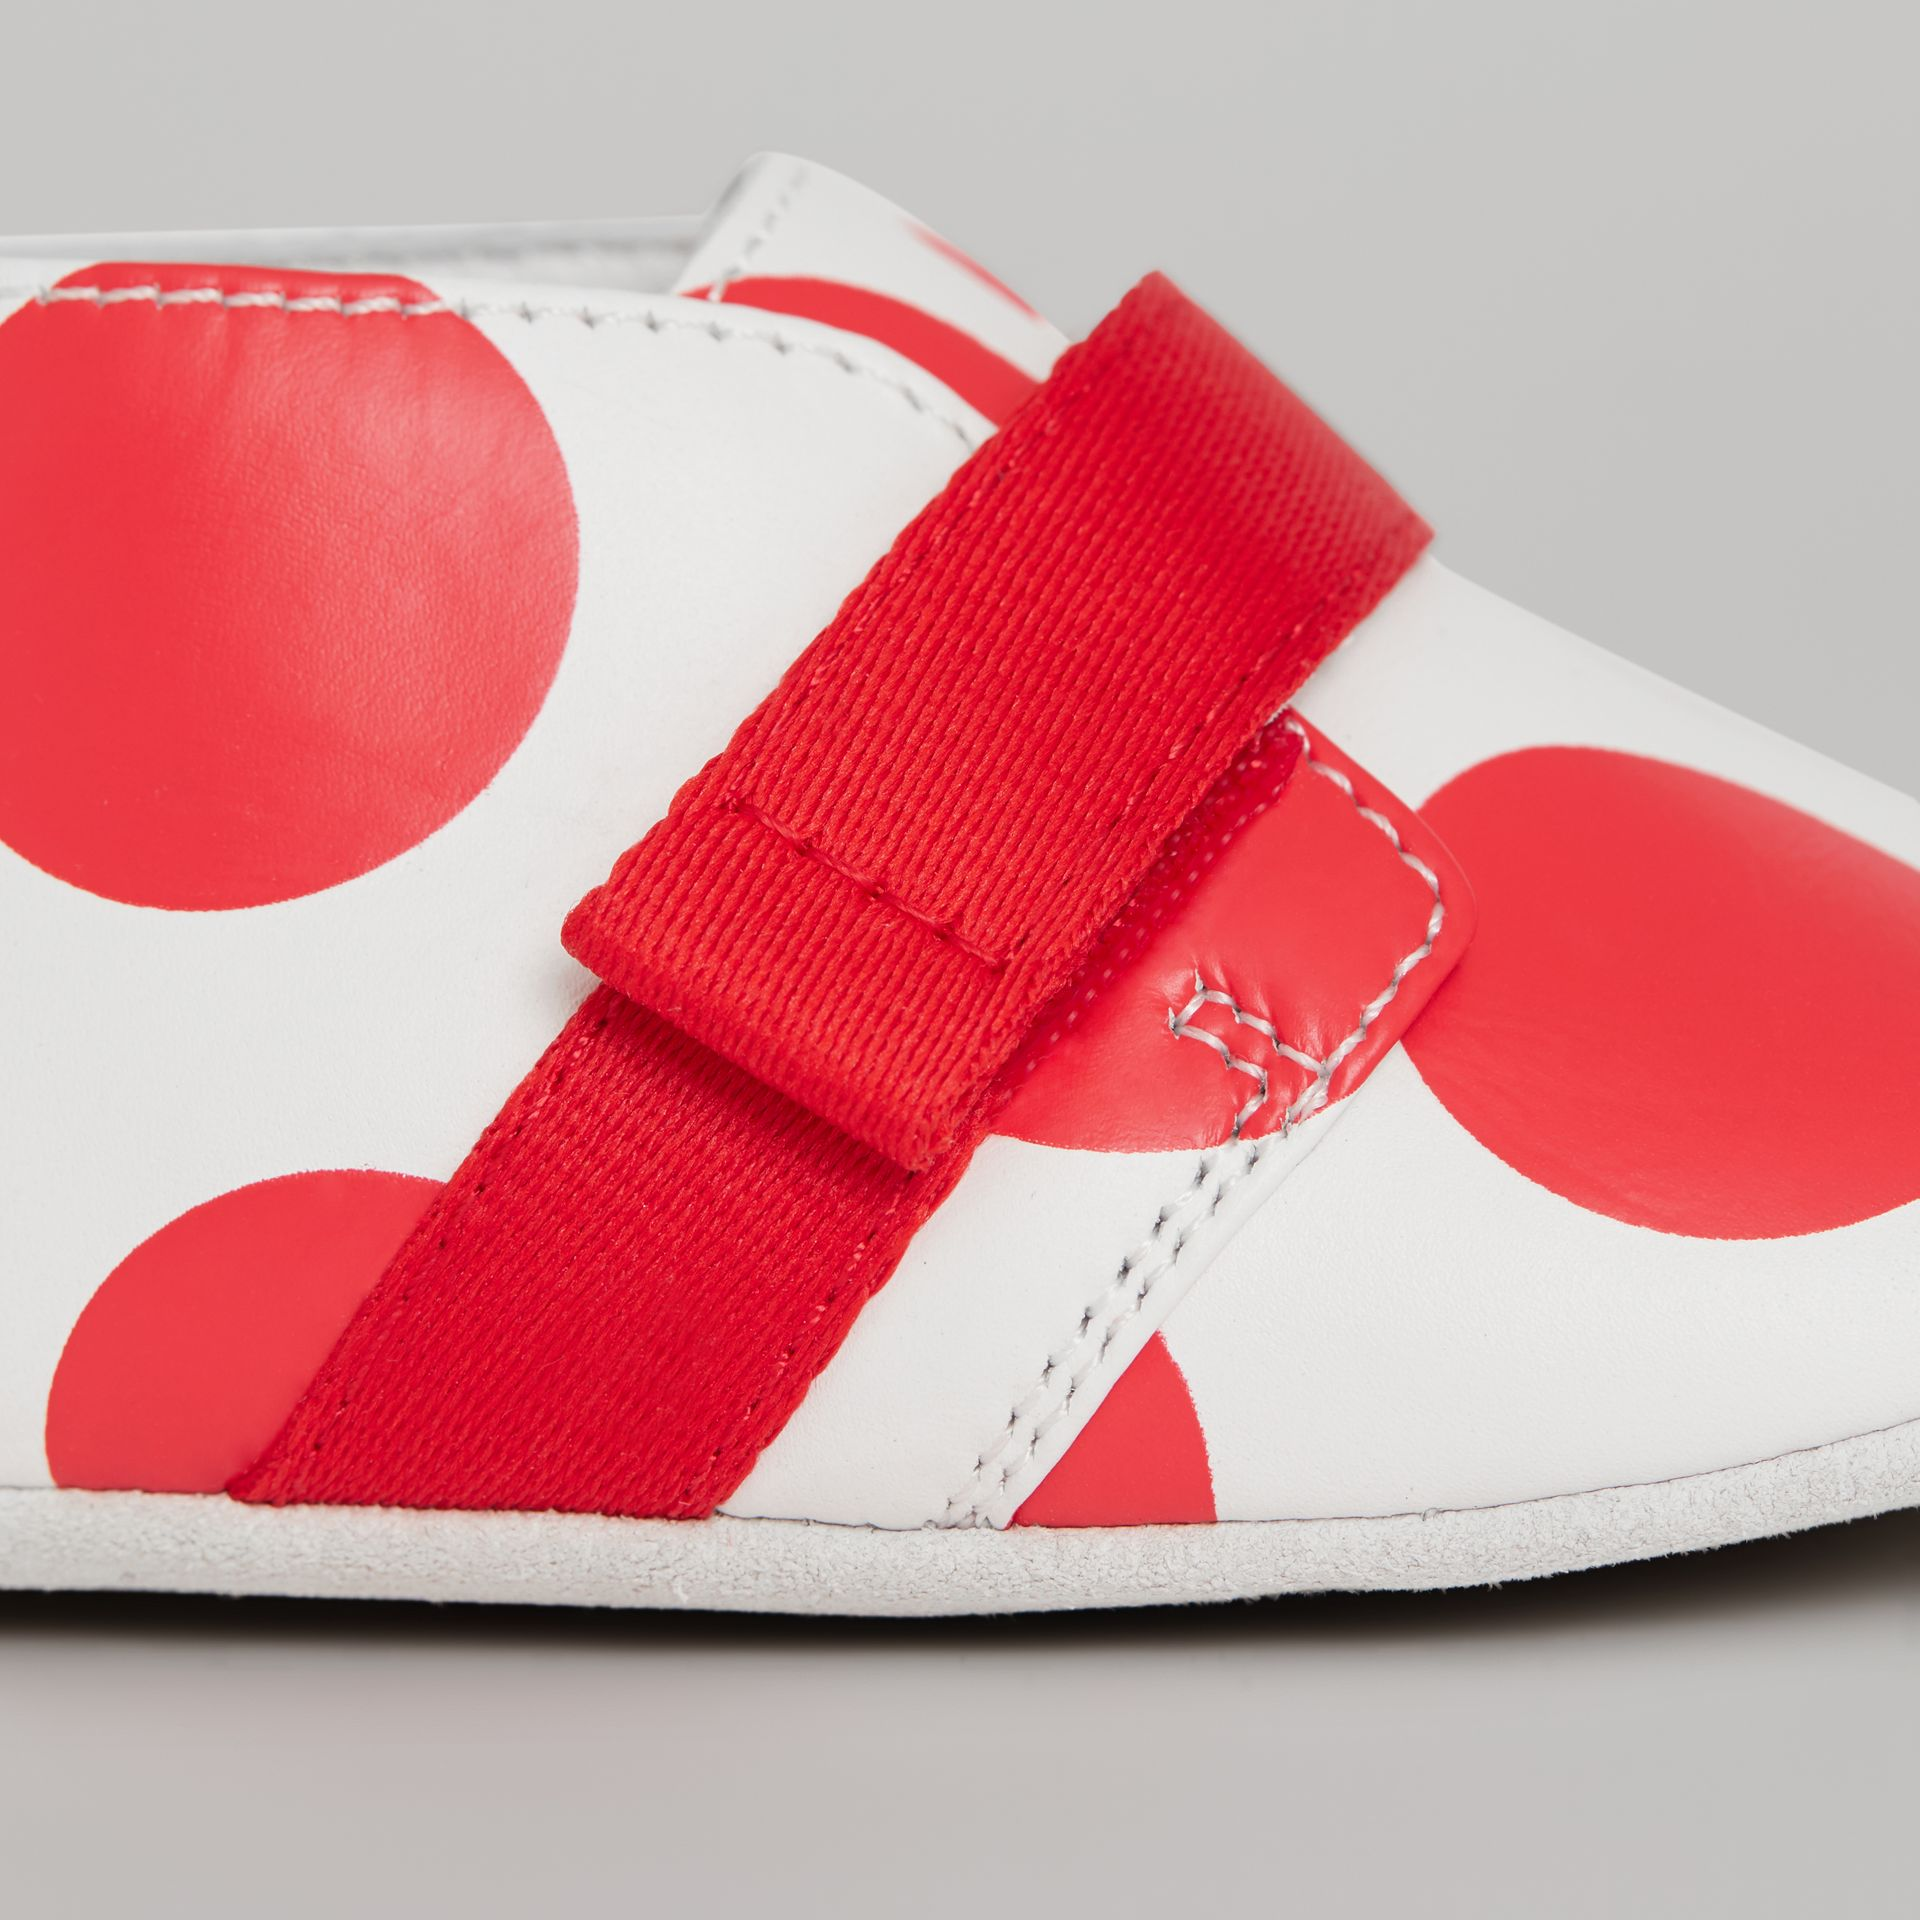 Spot Print Leather Shoes in Bright Red - Children | Burberry - gallery image 1